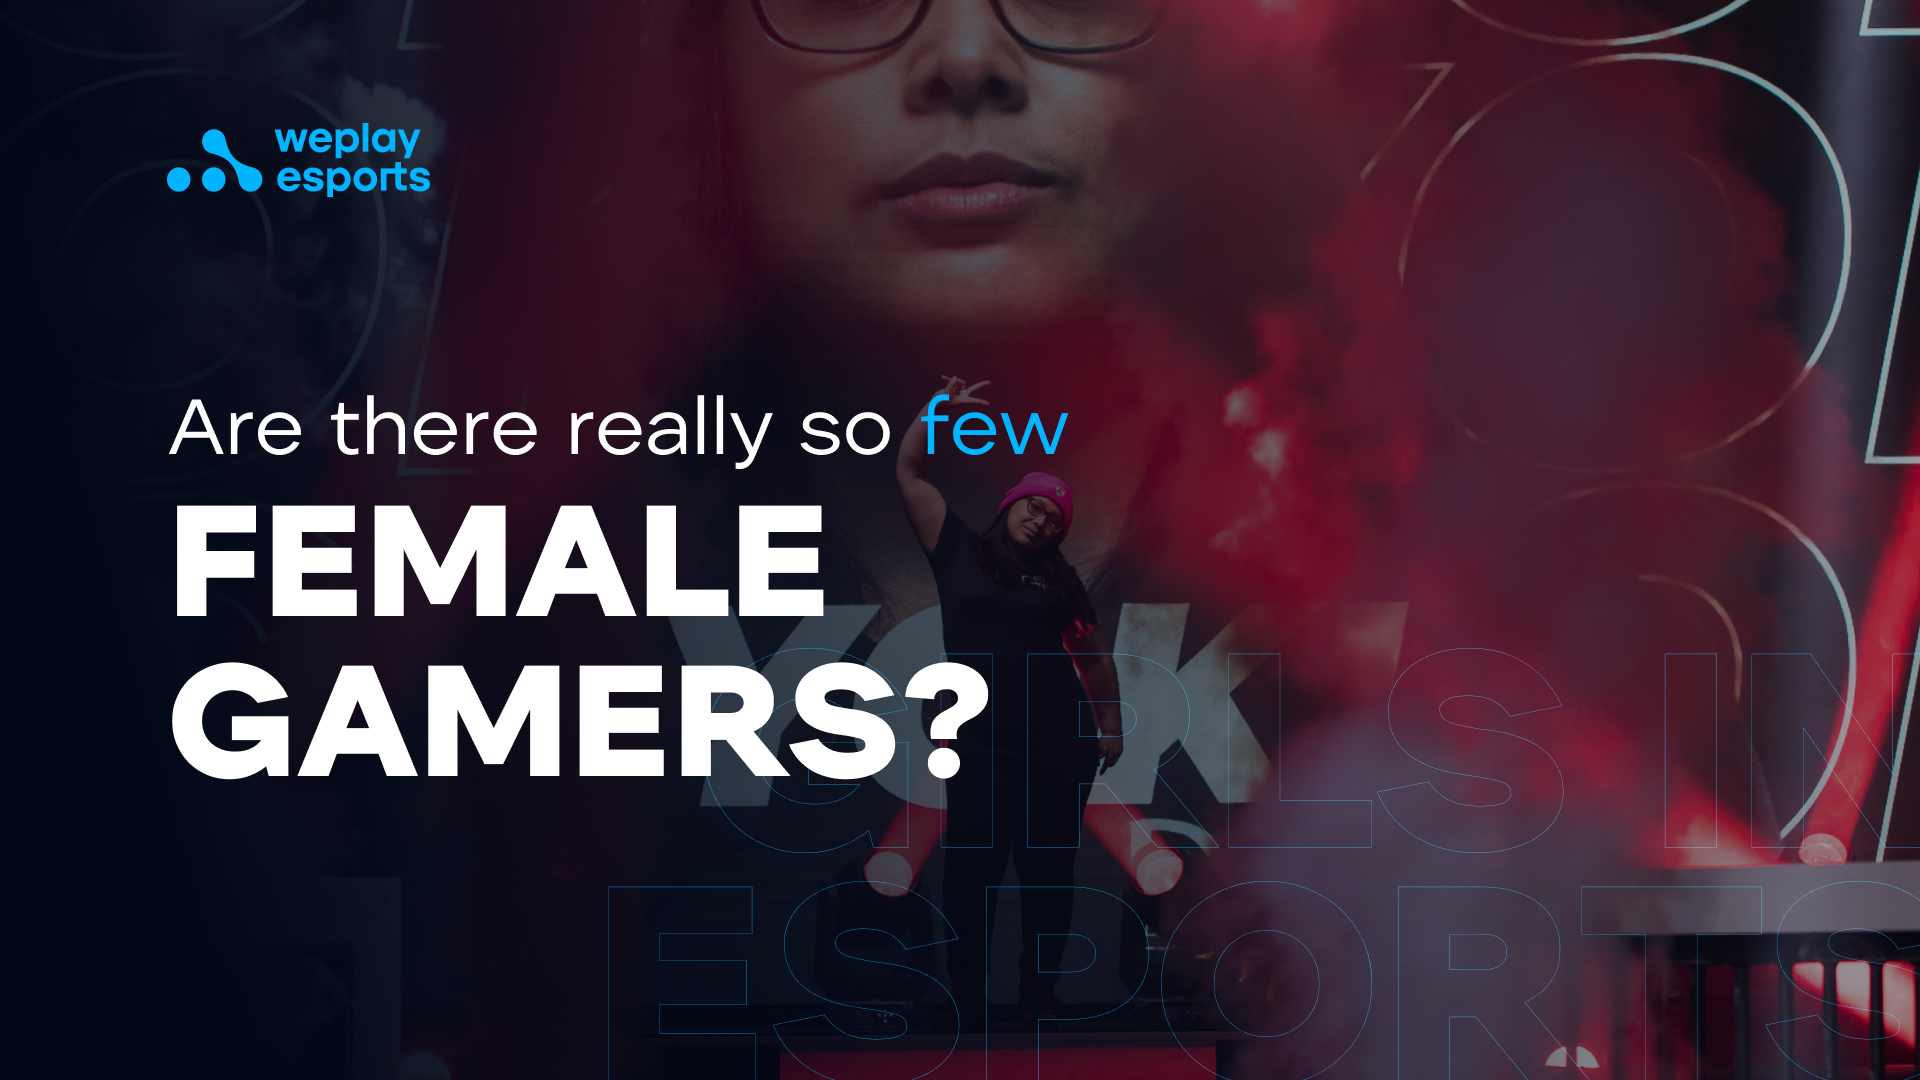 Are there really so few female gamers?